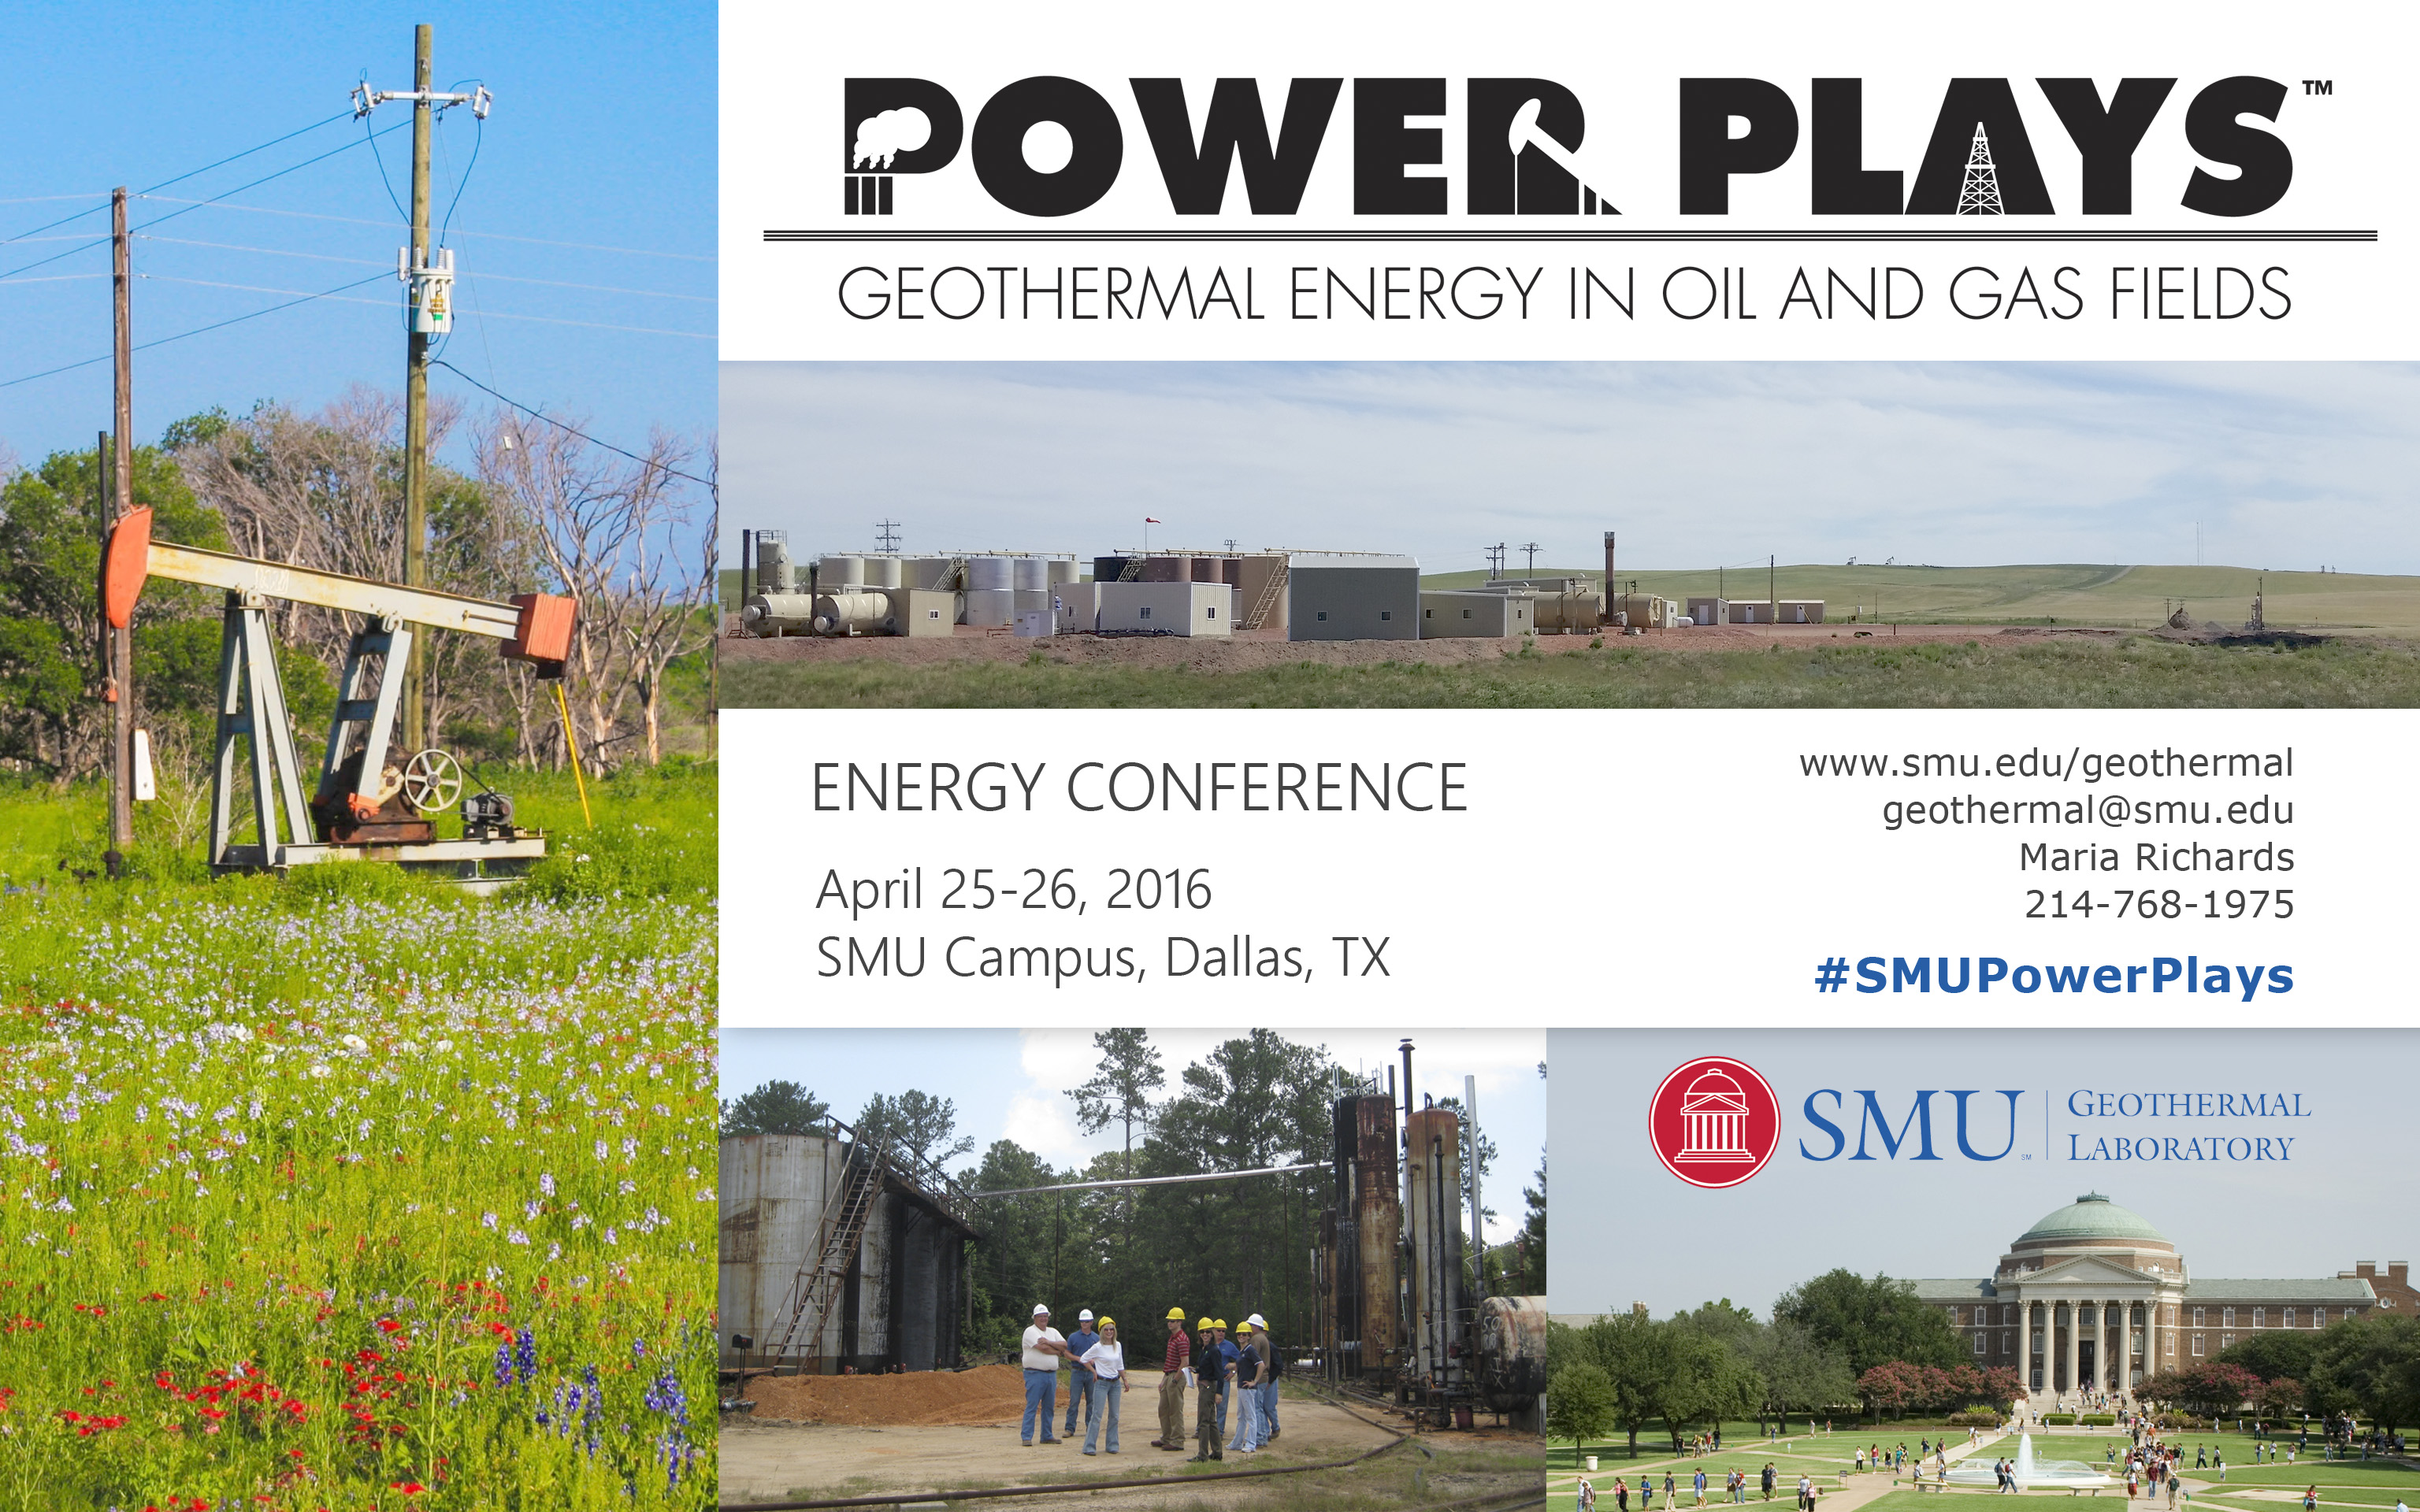 SMU 2016 Power Plays postcard